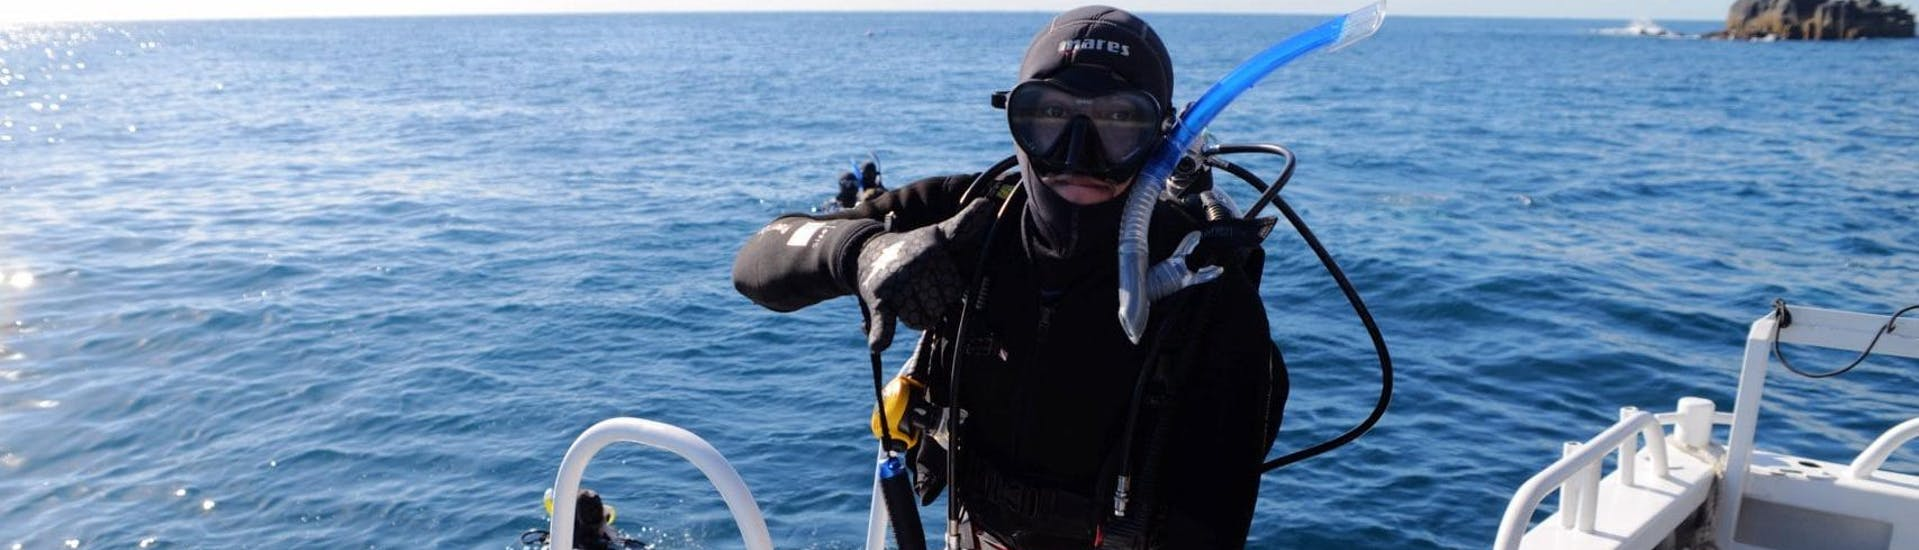 A man is preparing with his dive instructor from Gold Coast Dive Centre to dive into the fascinating marine world during the Guided Shore Dives at Cook Island for Certified Divers.